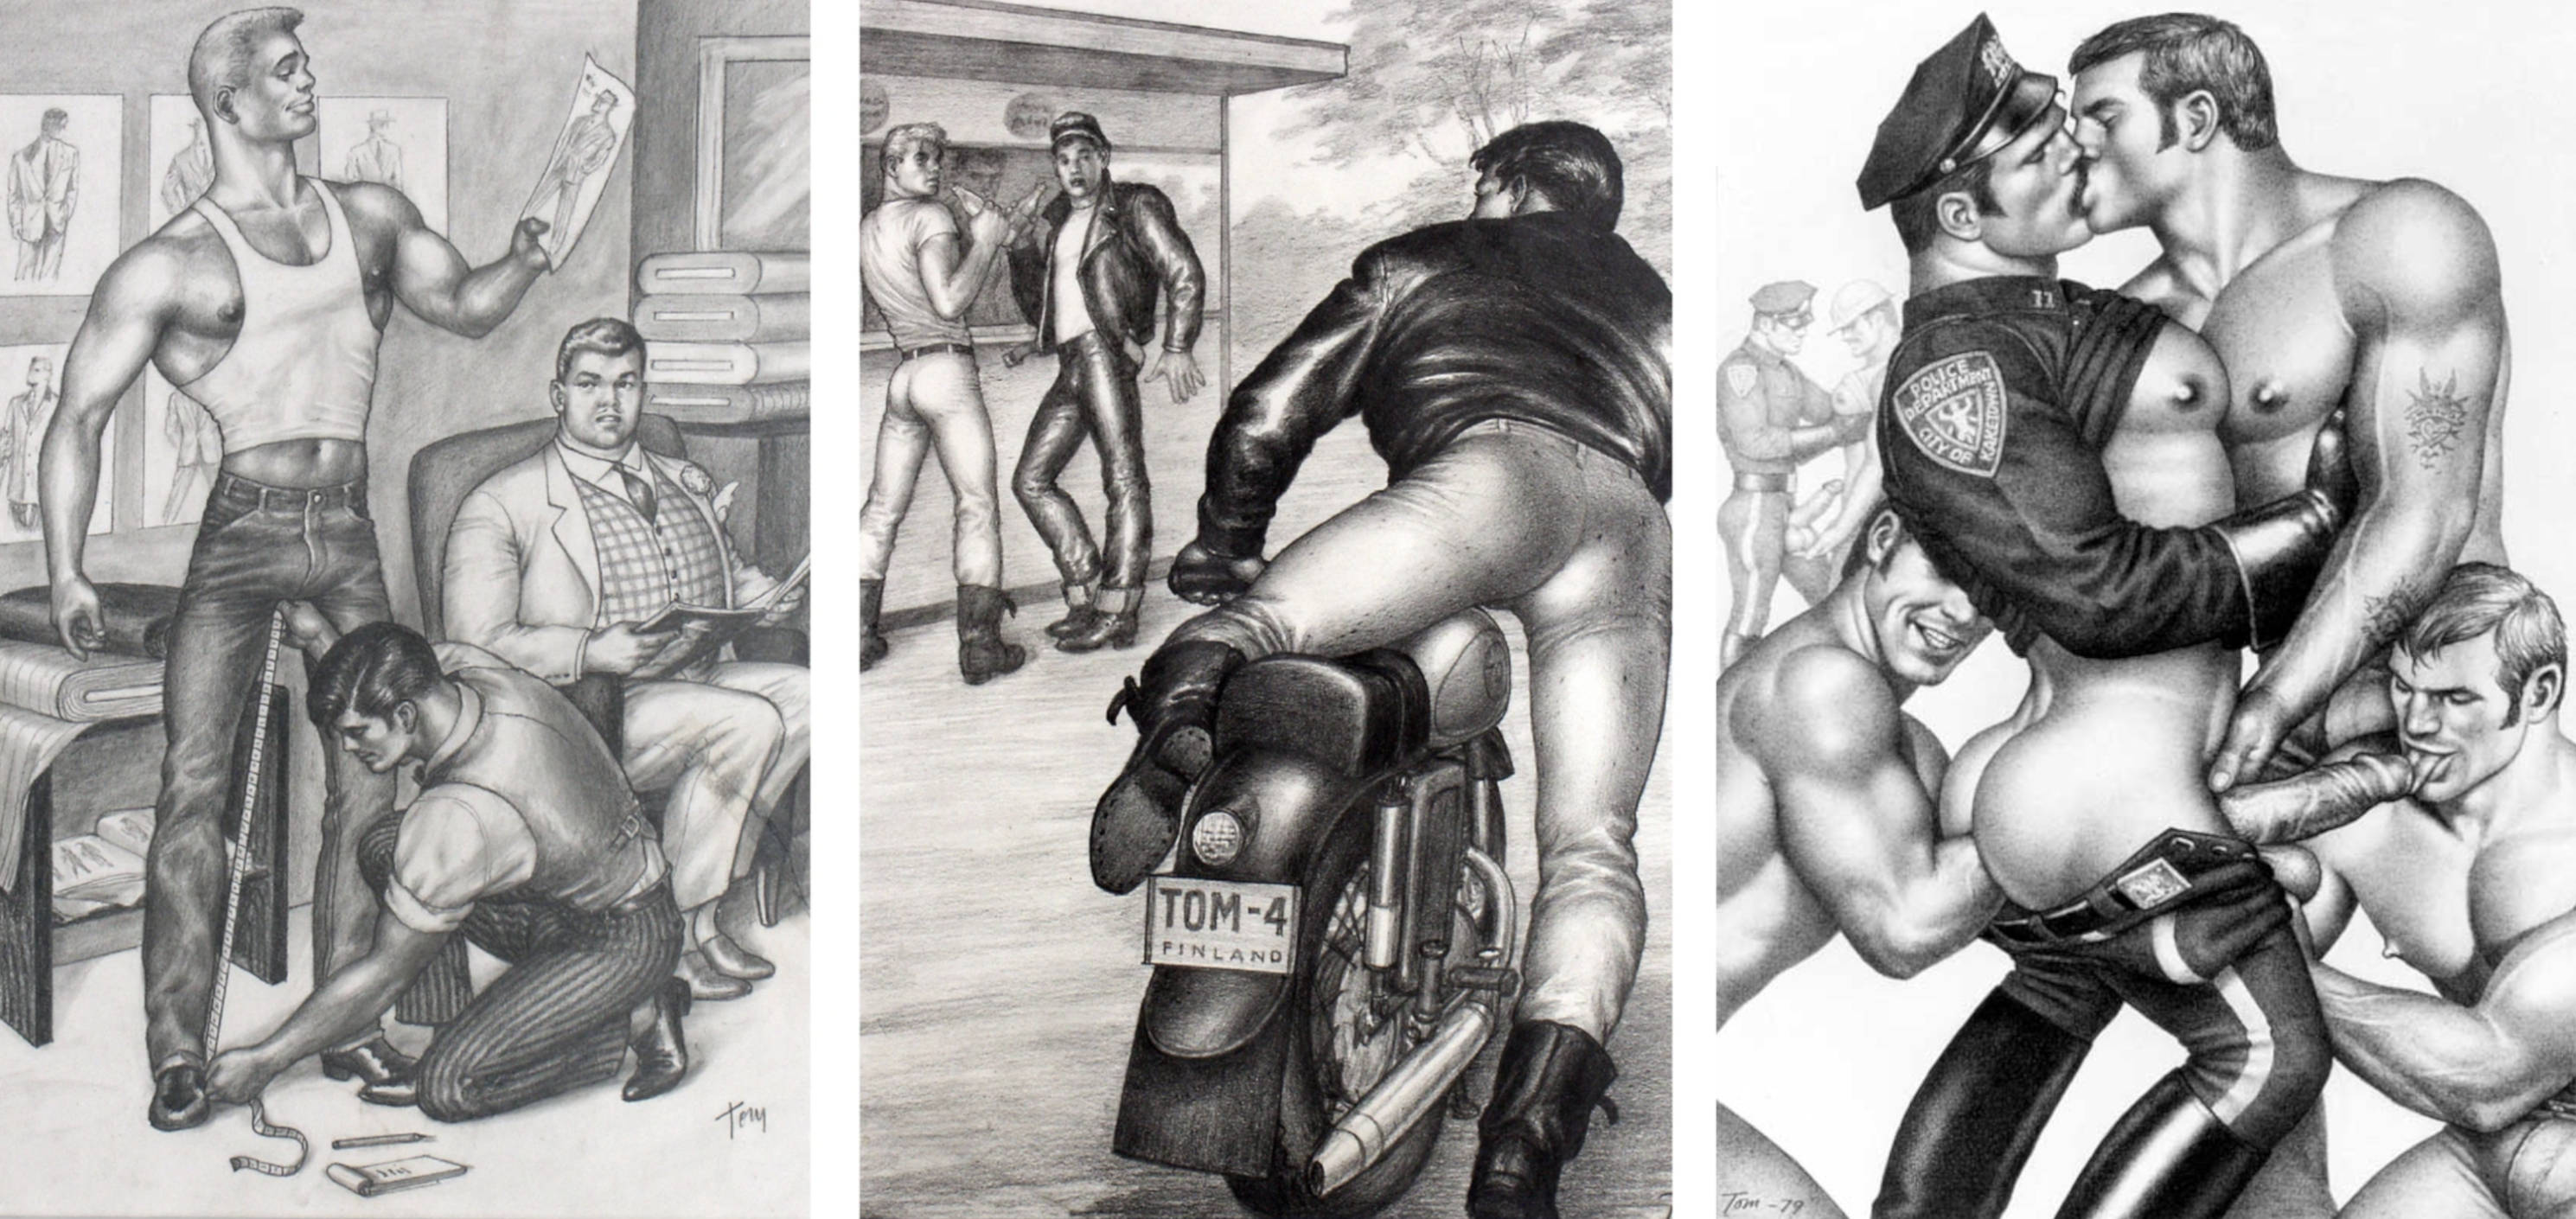 """Tom of Finland fisting LEFT: TOM OF FINLAND, UNTITLED, 1959. RIGHT: TOM OF FINLAND, UNTITLED (FROM """"MOTORCYCLE THIEF"""" SERIES), 1964. COURTESY OF TOM OF FINLAND FOUNDATION AND DAVID KORDANSKY GALLERY, LOS ANGELES, CALIFORNIA."""